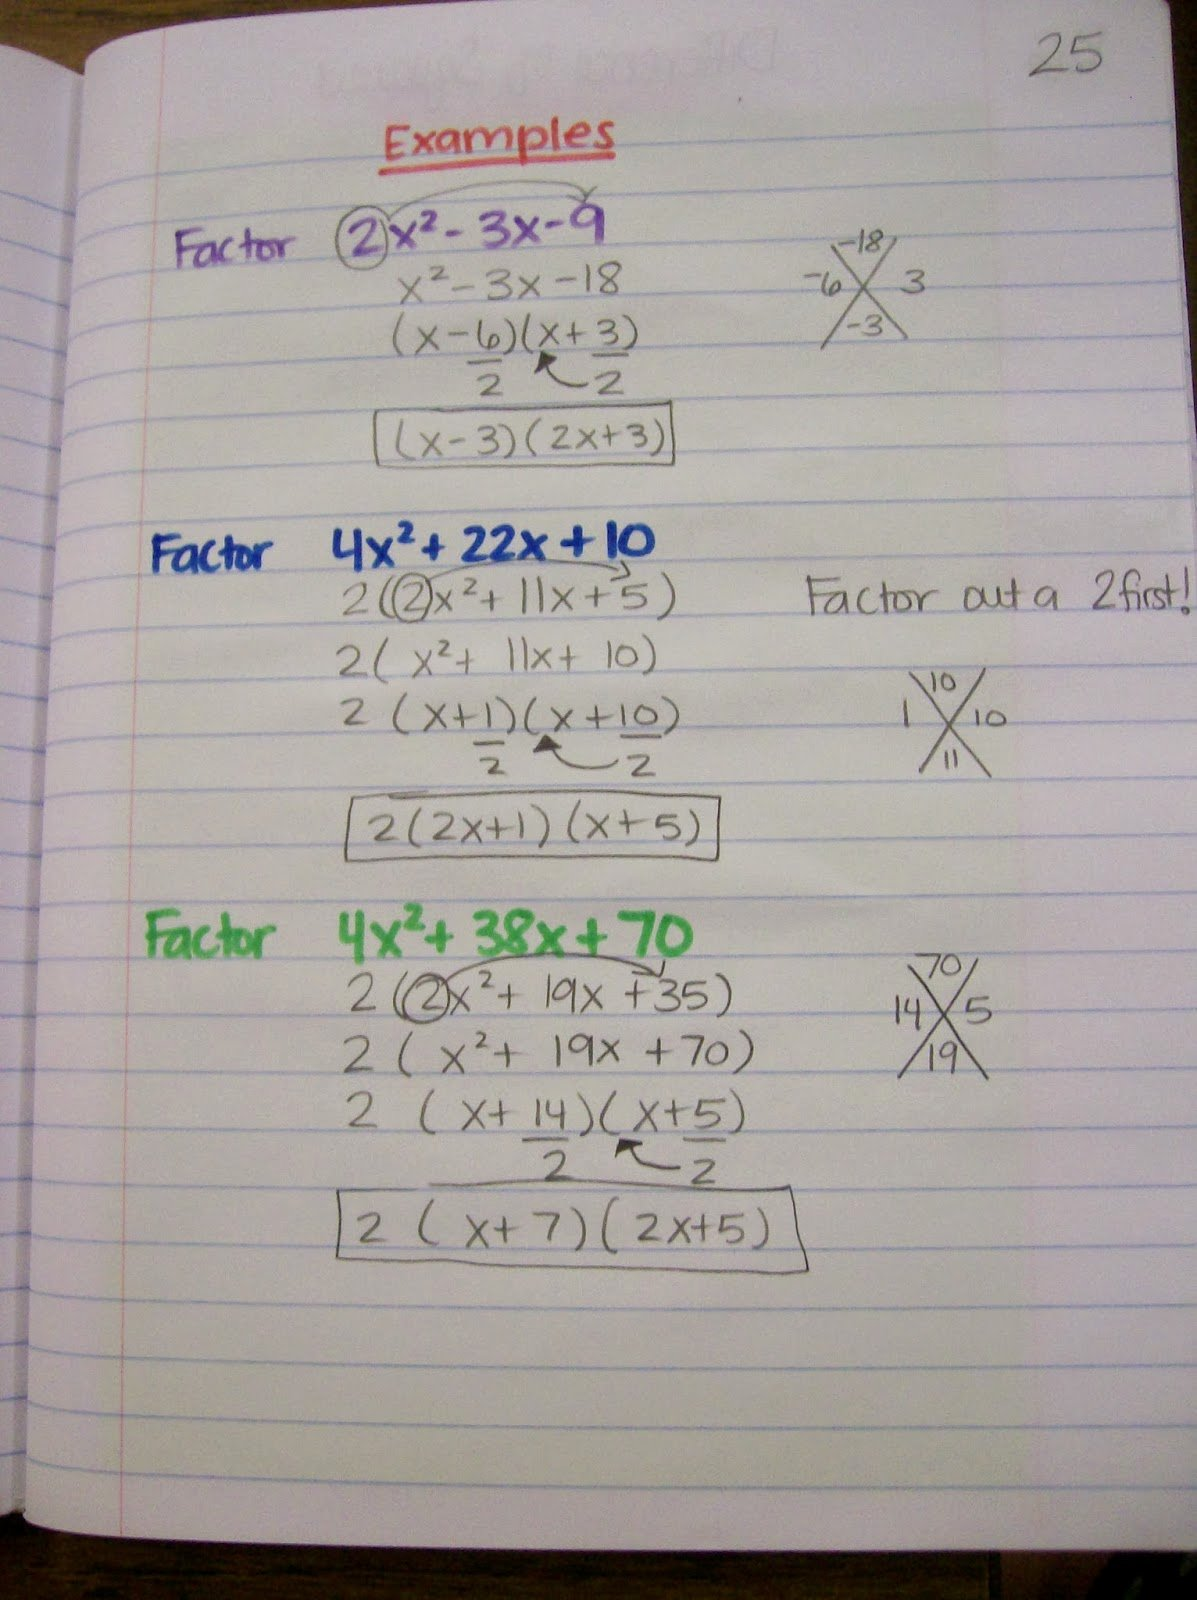 Algebra 1 Factoring Worksheet Unique Math = Love Algebra 1 Inb Pages Polynomials and Factoring